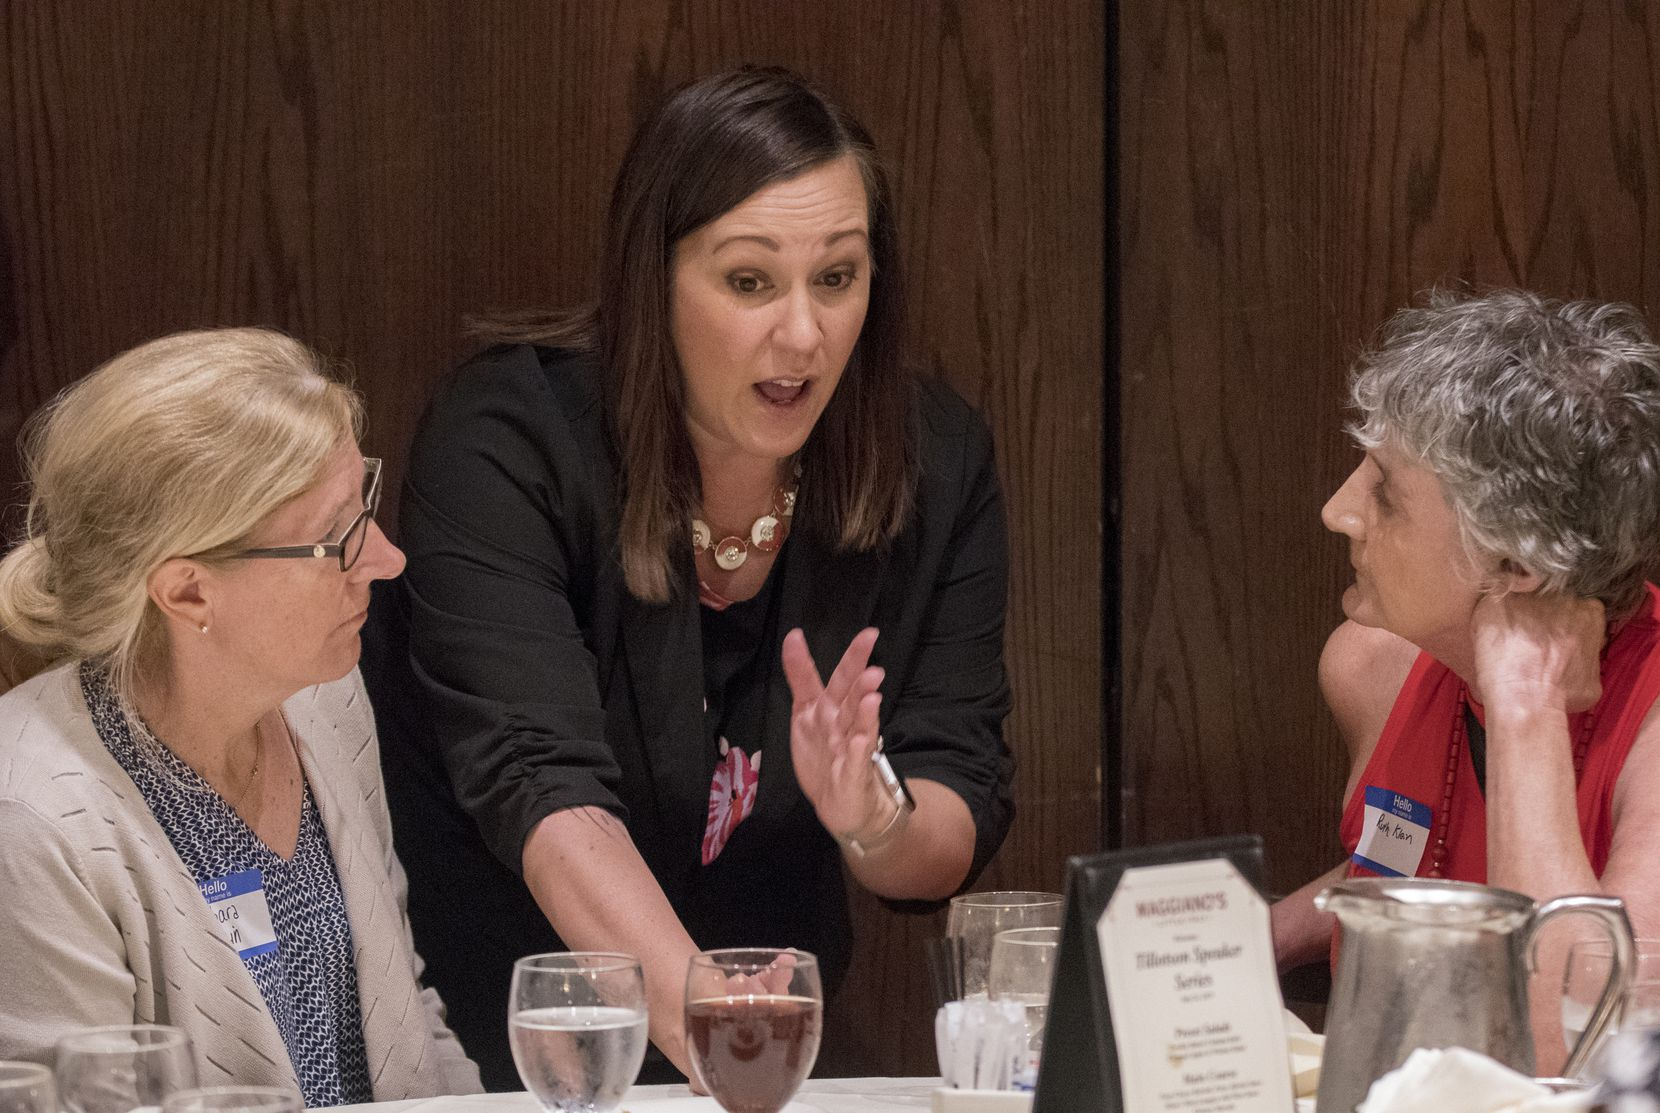 U.S. Senate candidate MJ Hegar speaks with attendees at the Dallas County Democratic Party luncheon where she was a guest speaker on July 24, 2019 at Maggiano's Little Italy restaurant at Northpark Center in Dallas, Texas. (Robert W. Hart/Special Contributor)